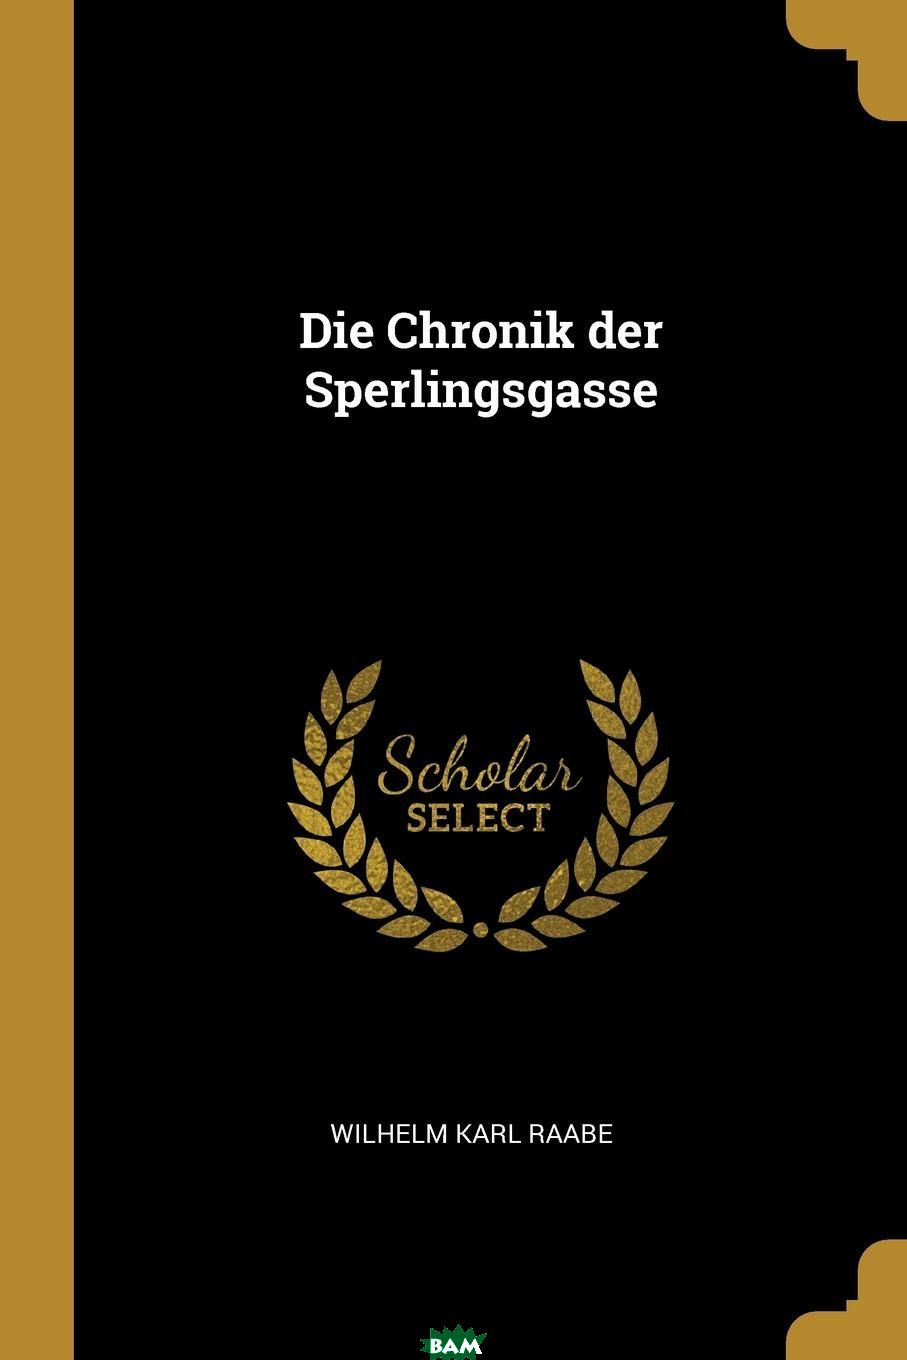 Die Chronik der Sperlingsgasse, Wilhelm Karl Raabe, 9780274516957  - купить со скидкой